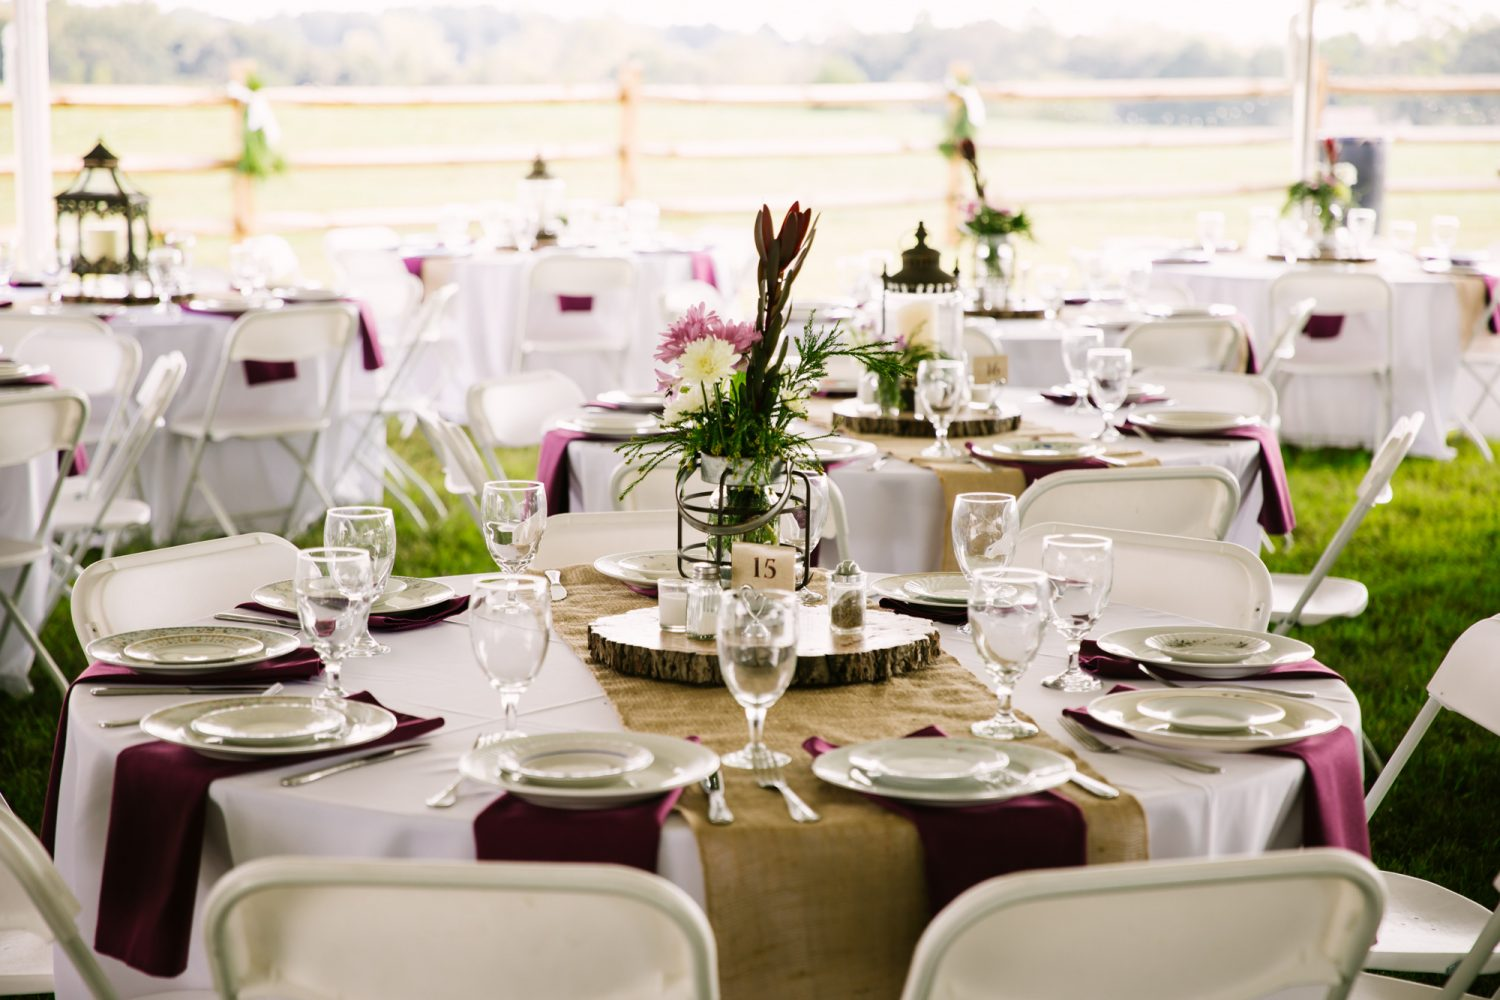 Waynesville, NC Wedding Photography | Wedding Reception Table Settings